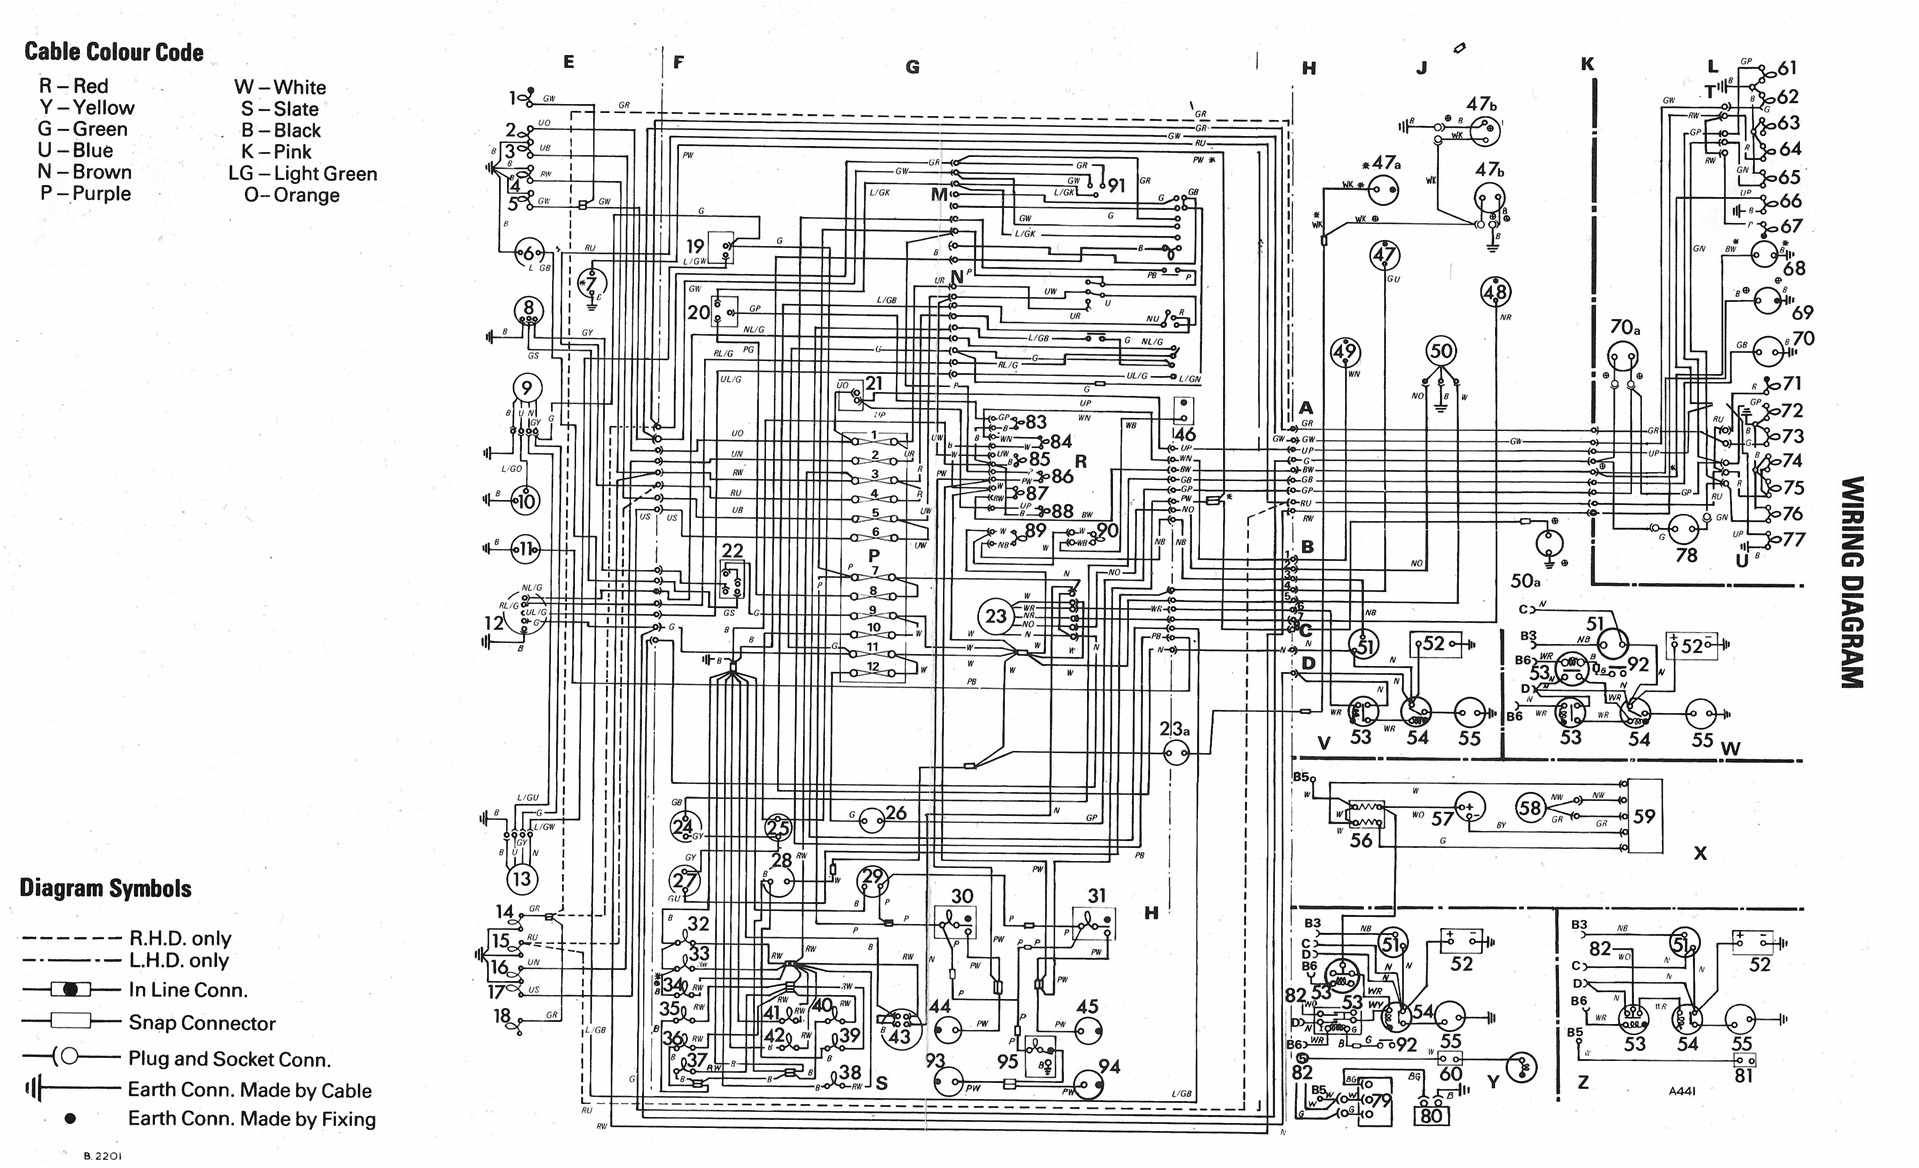 482800022528094020 on 2004 vw beetle fuse box diagram